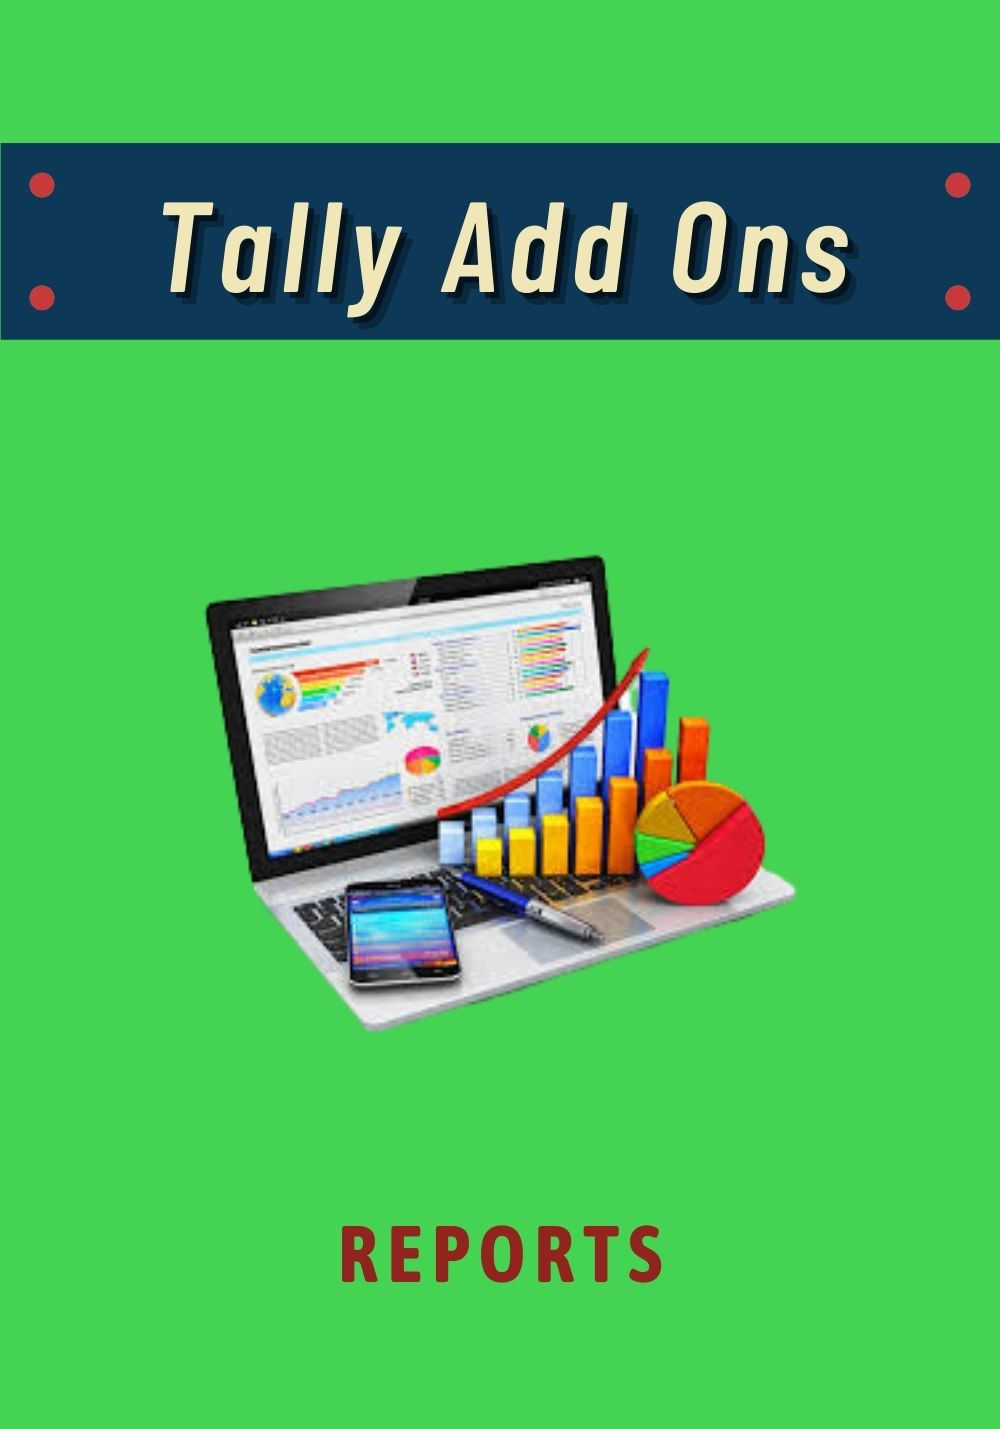 Tally Add Ons - Reports